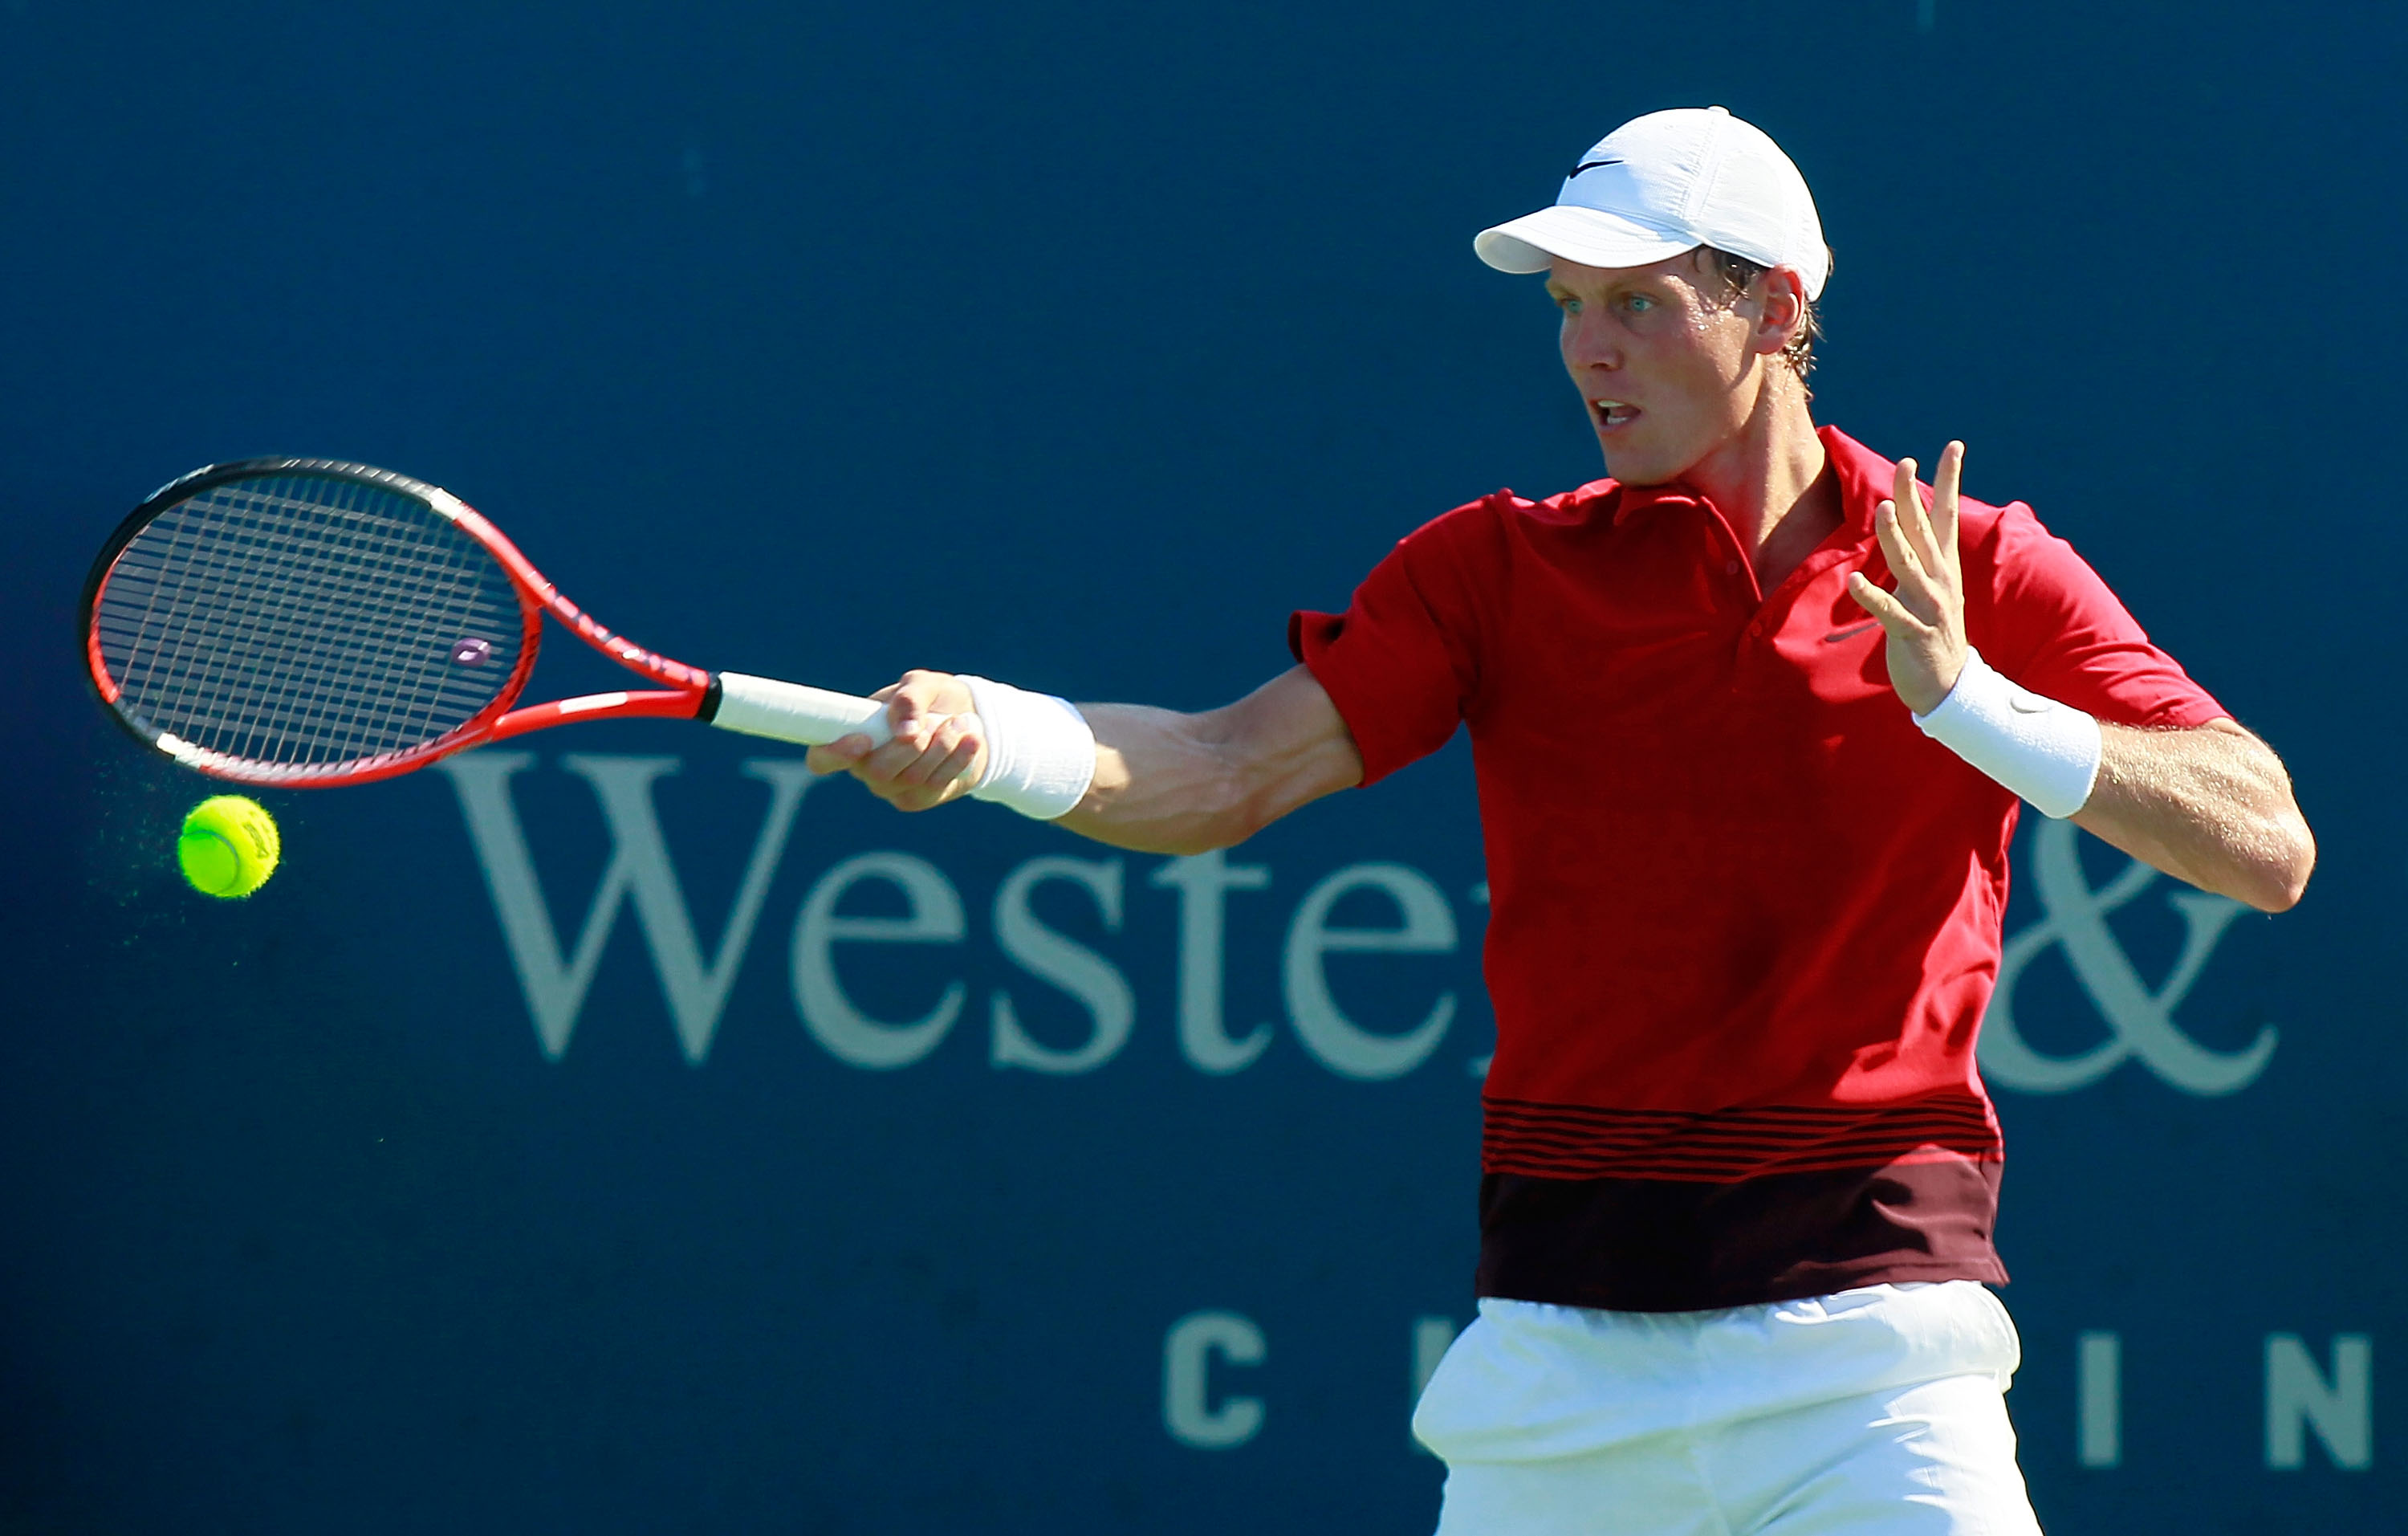 CINCINNATI - AUGUST 19:  Tomas Berdych of the Czech Republic returns a forehand to Marcos Baghdatis of Cyprus during Day 4 of the Western & Southern Financial Group Masters at the Lindner Family Tennis Center on August 19, 2010 in Cincinnati, Ohio.  (Phot